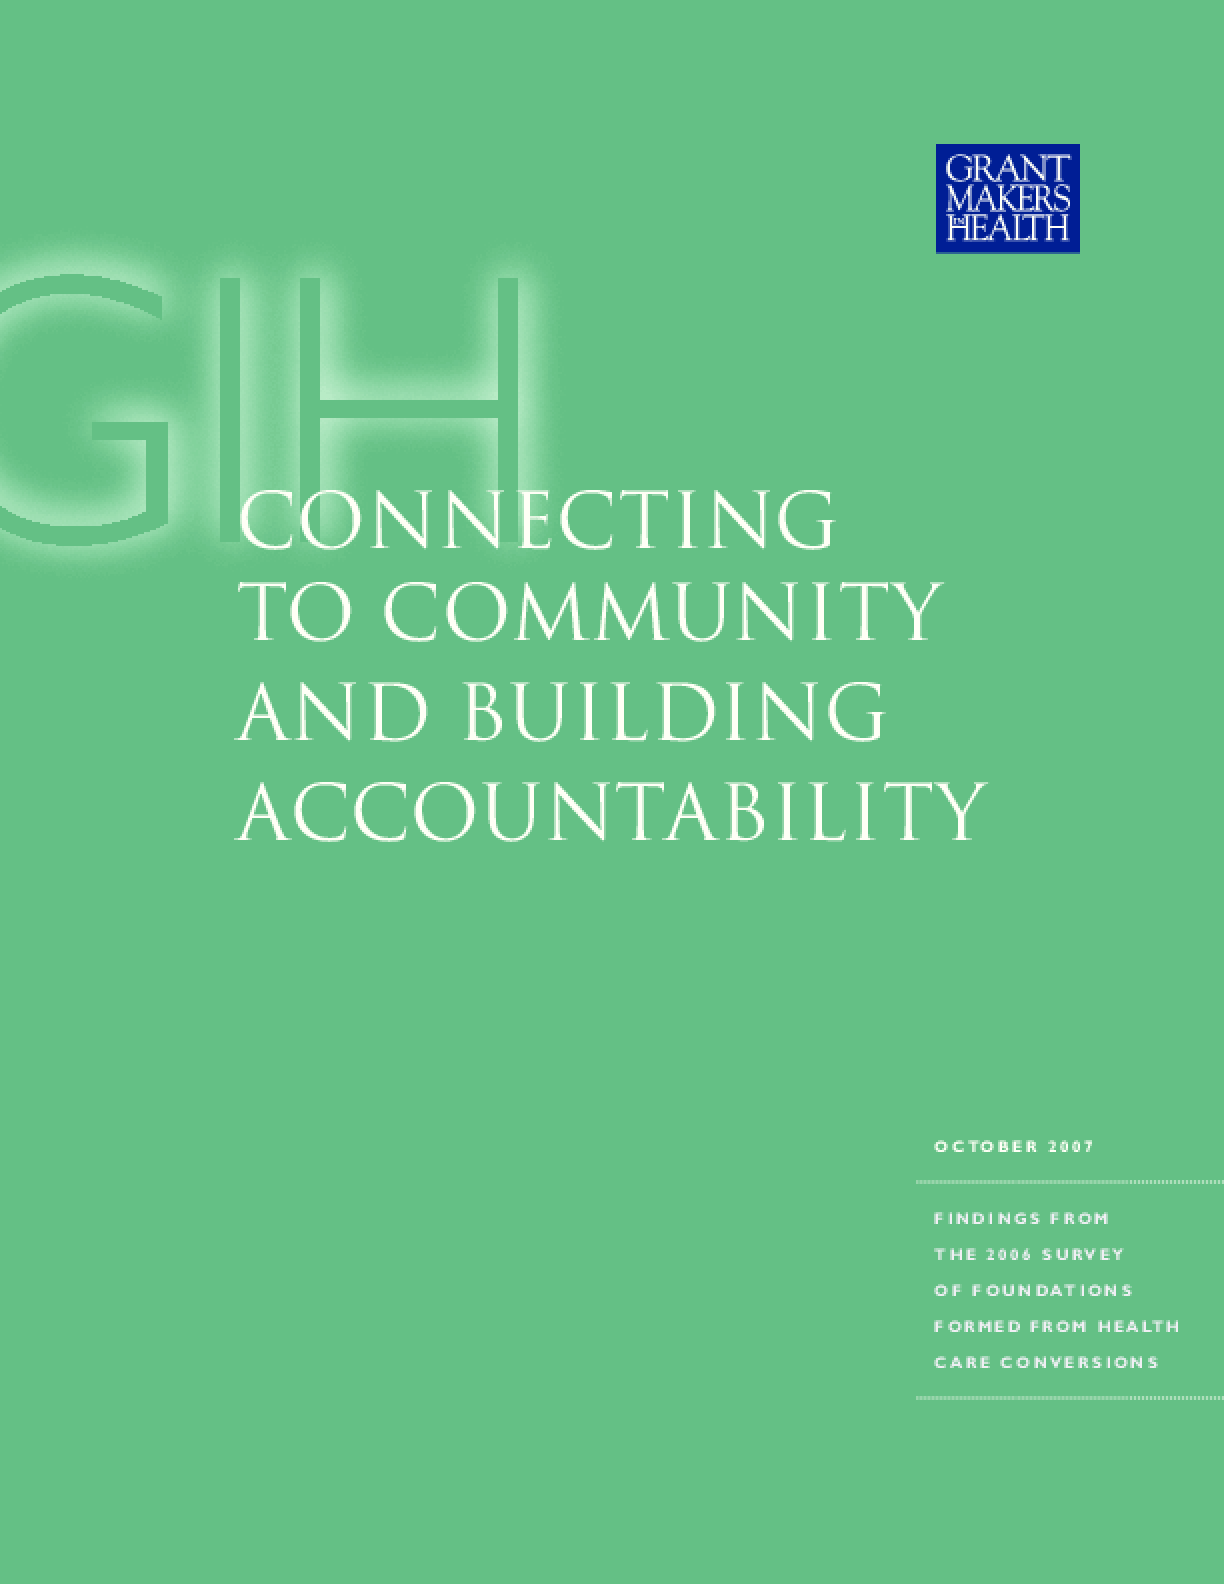 Connecting to Community and Building Accountability